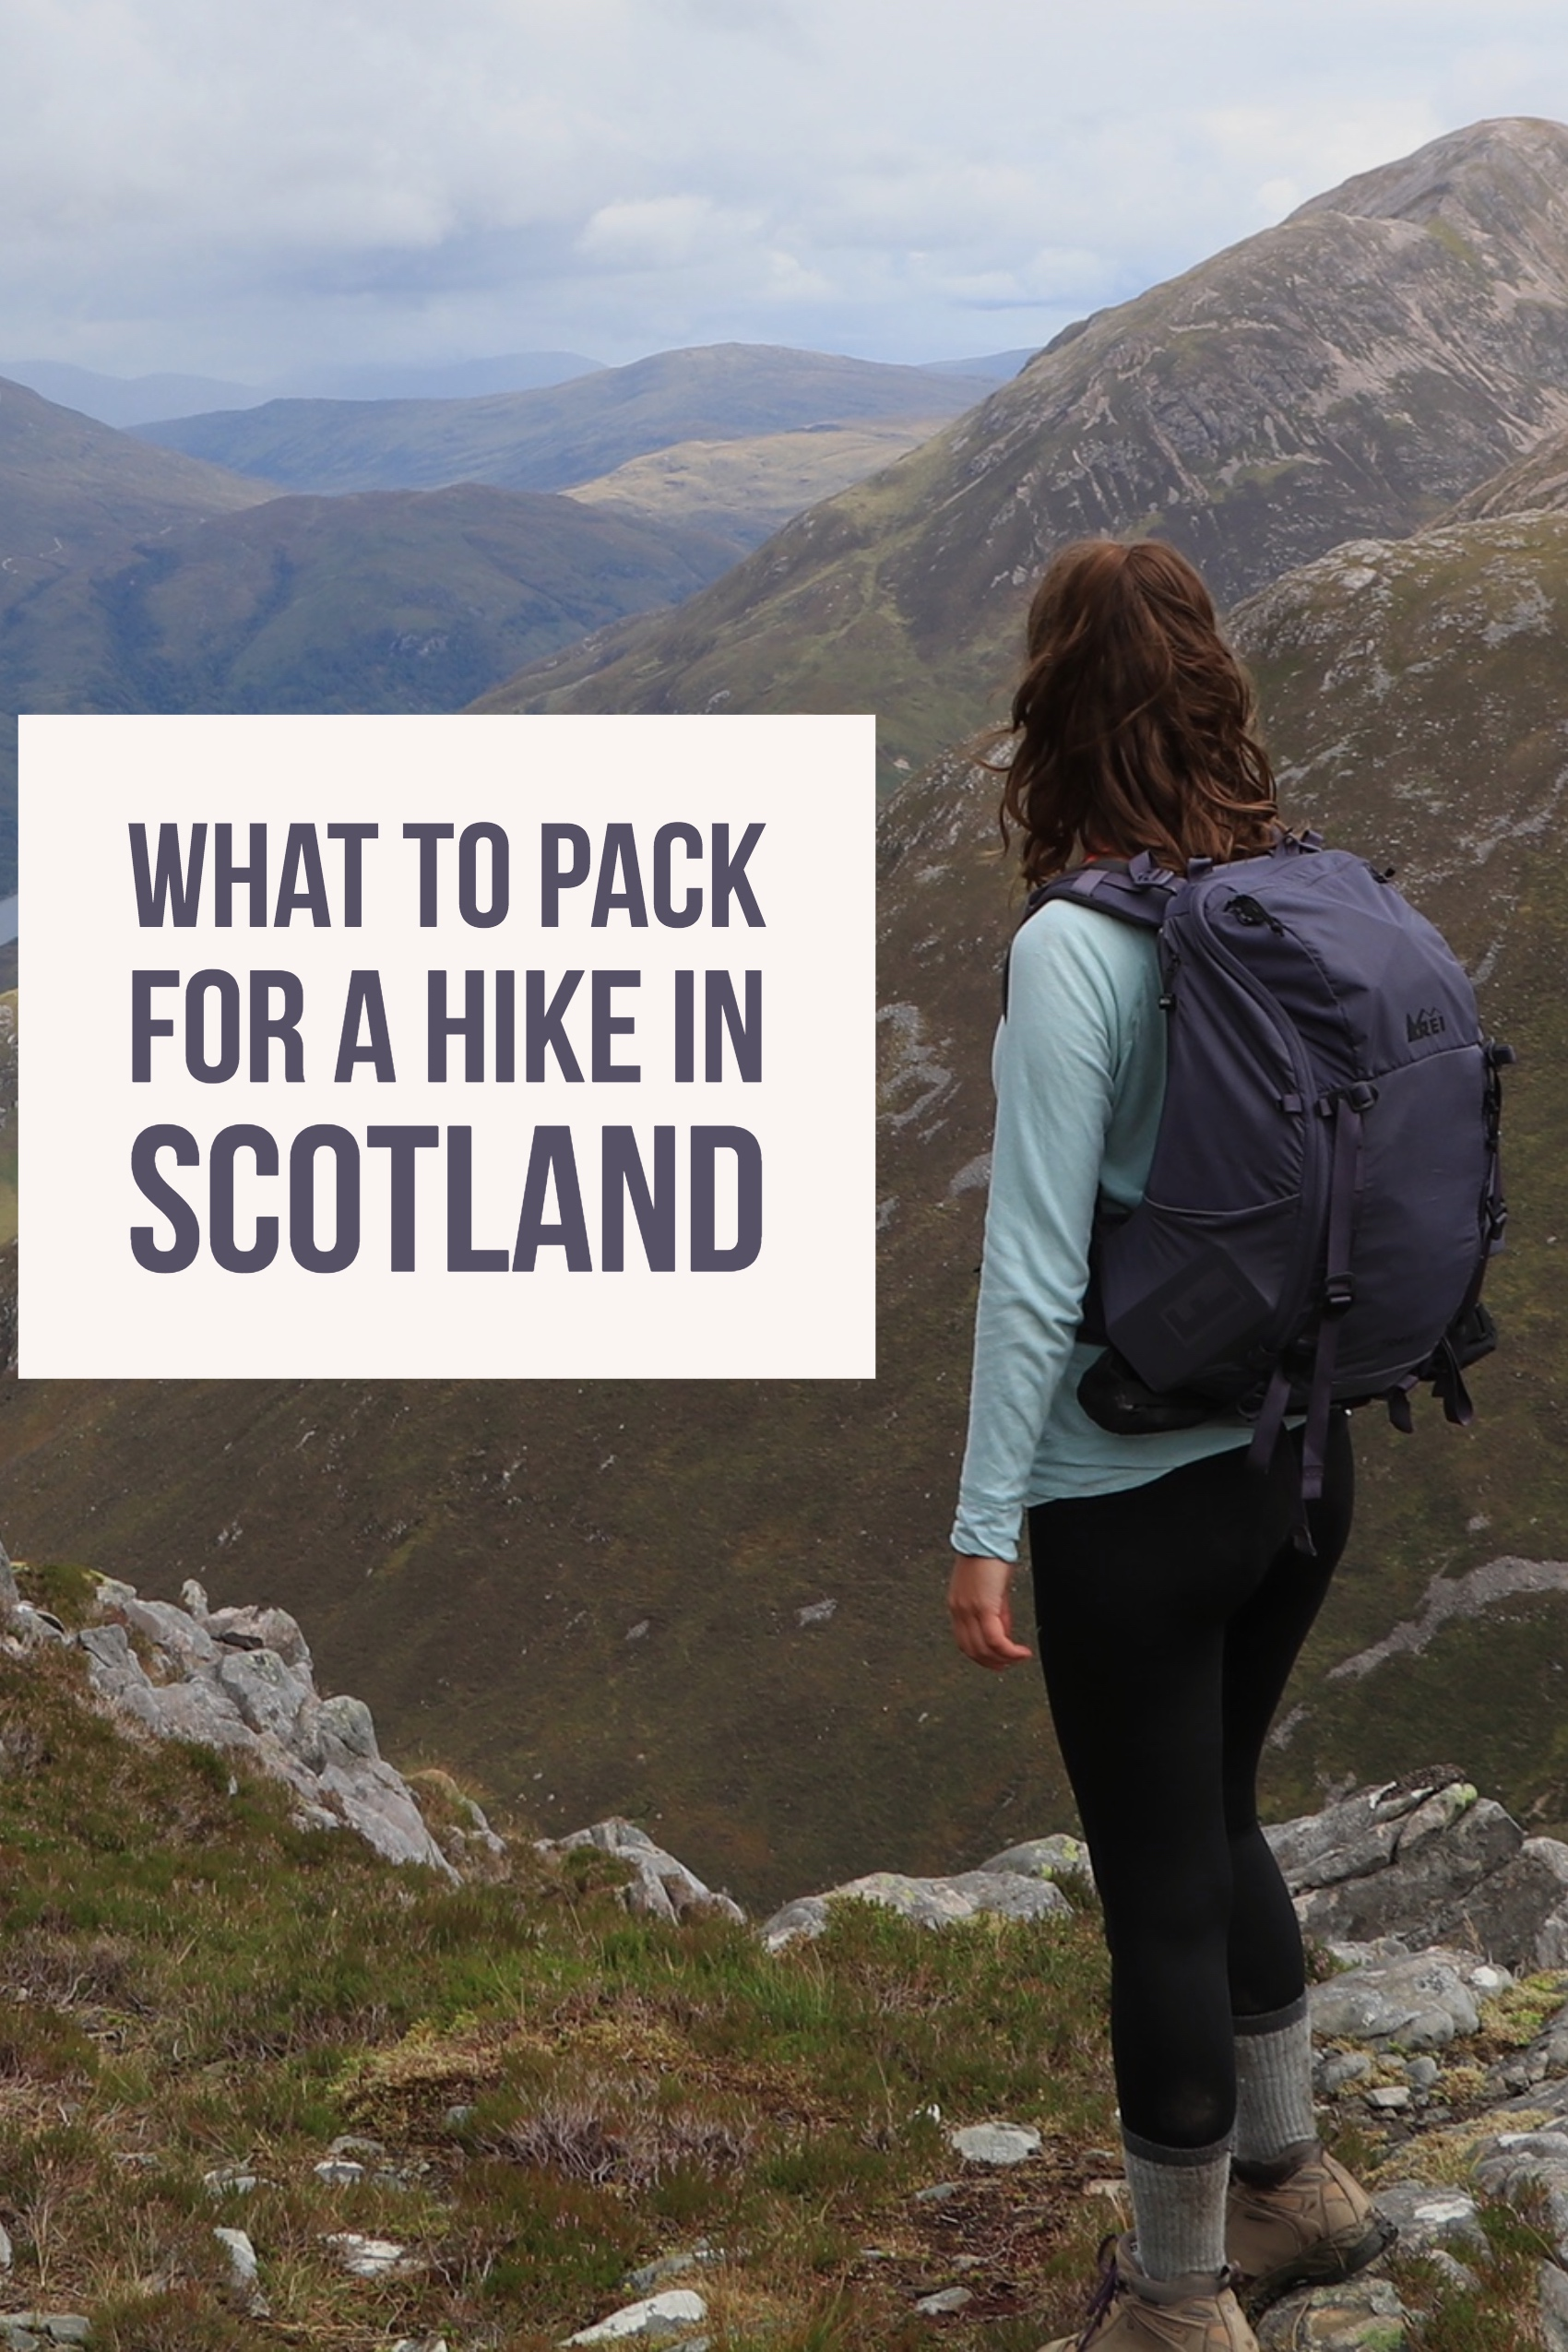 What to pack for a hike in Scotland, Pinterest